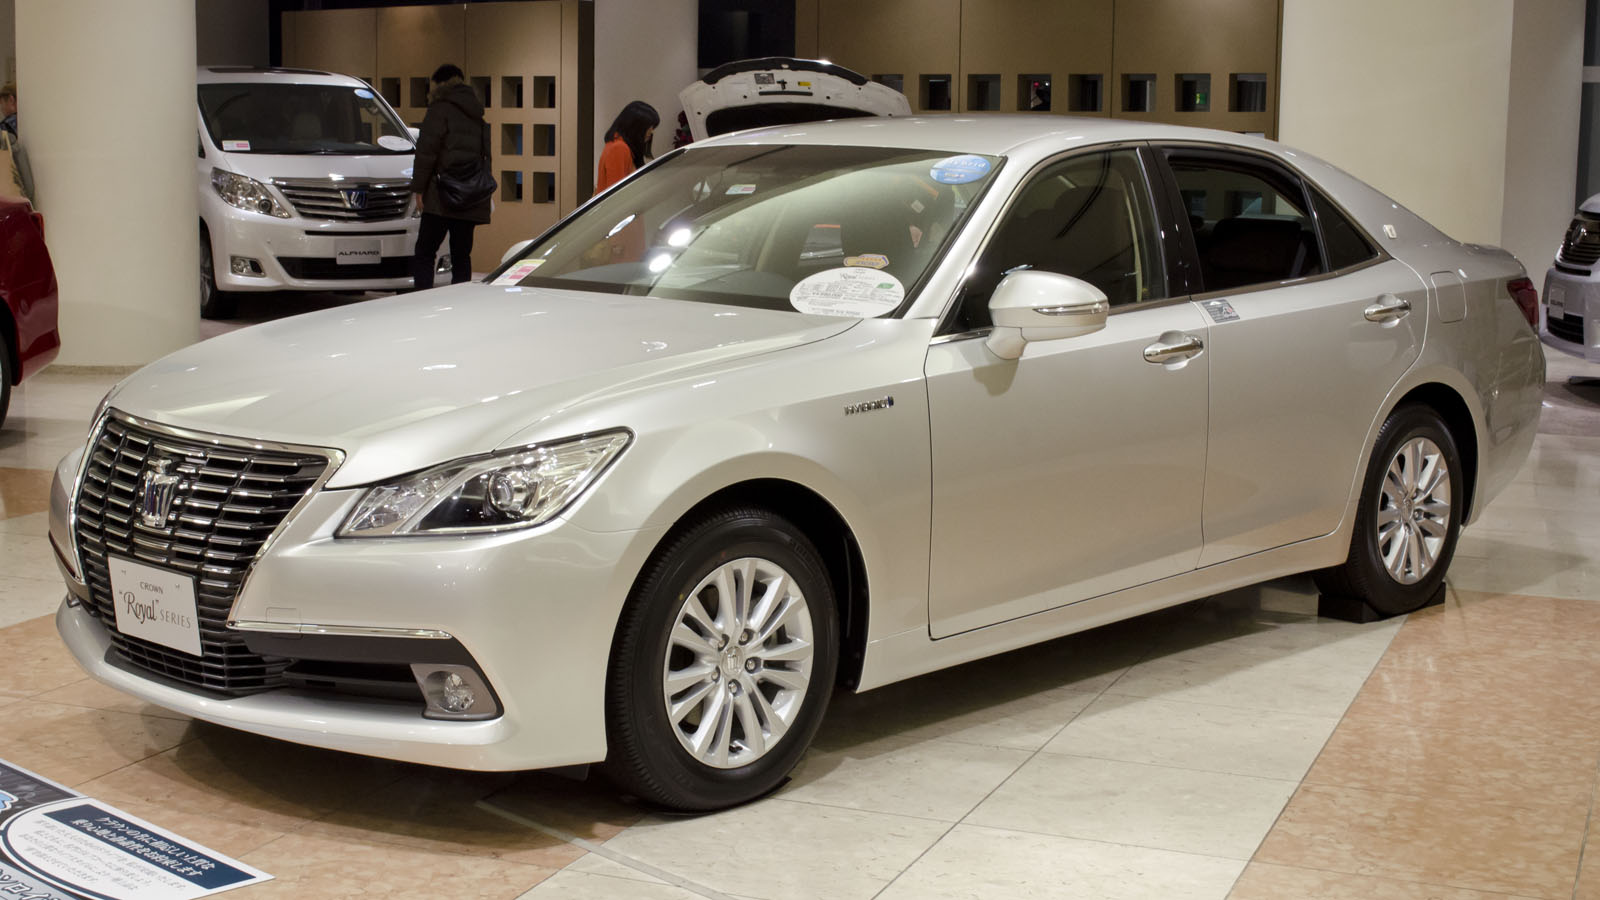 Toyota Crown Royal Saloon Cars For Sale In Myanmar Found